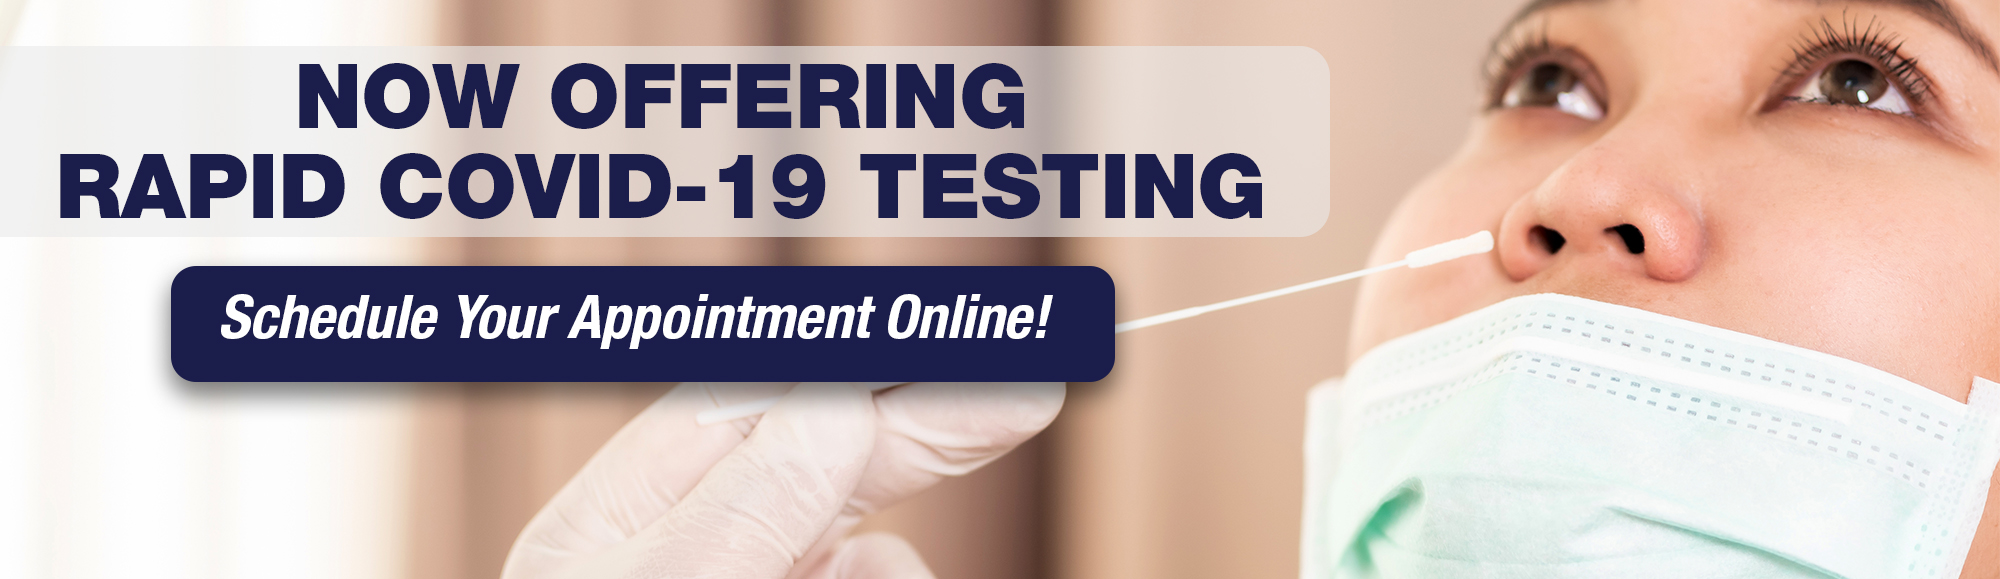 COVID-19 Rapid Testing in Ilion, NY